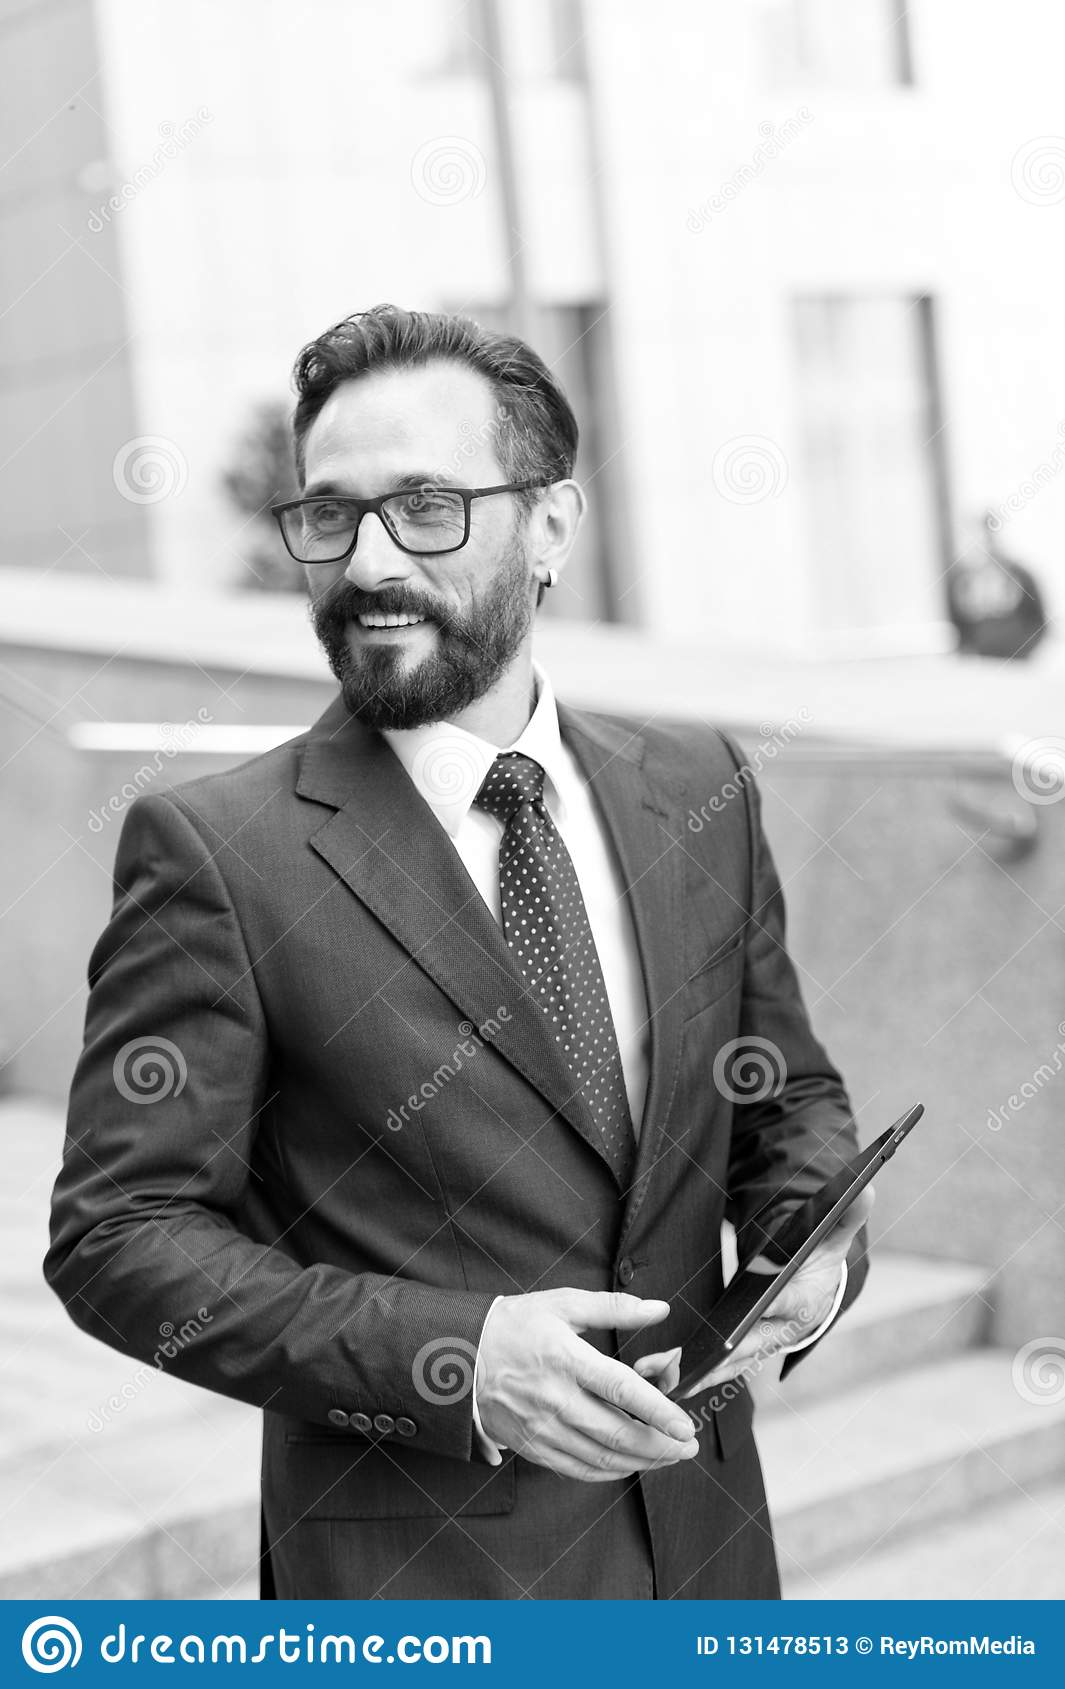 Close-up of business man using a digital tablet at work. Portrait of handsome bearded businessman at meeting outdoor